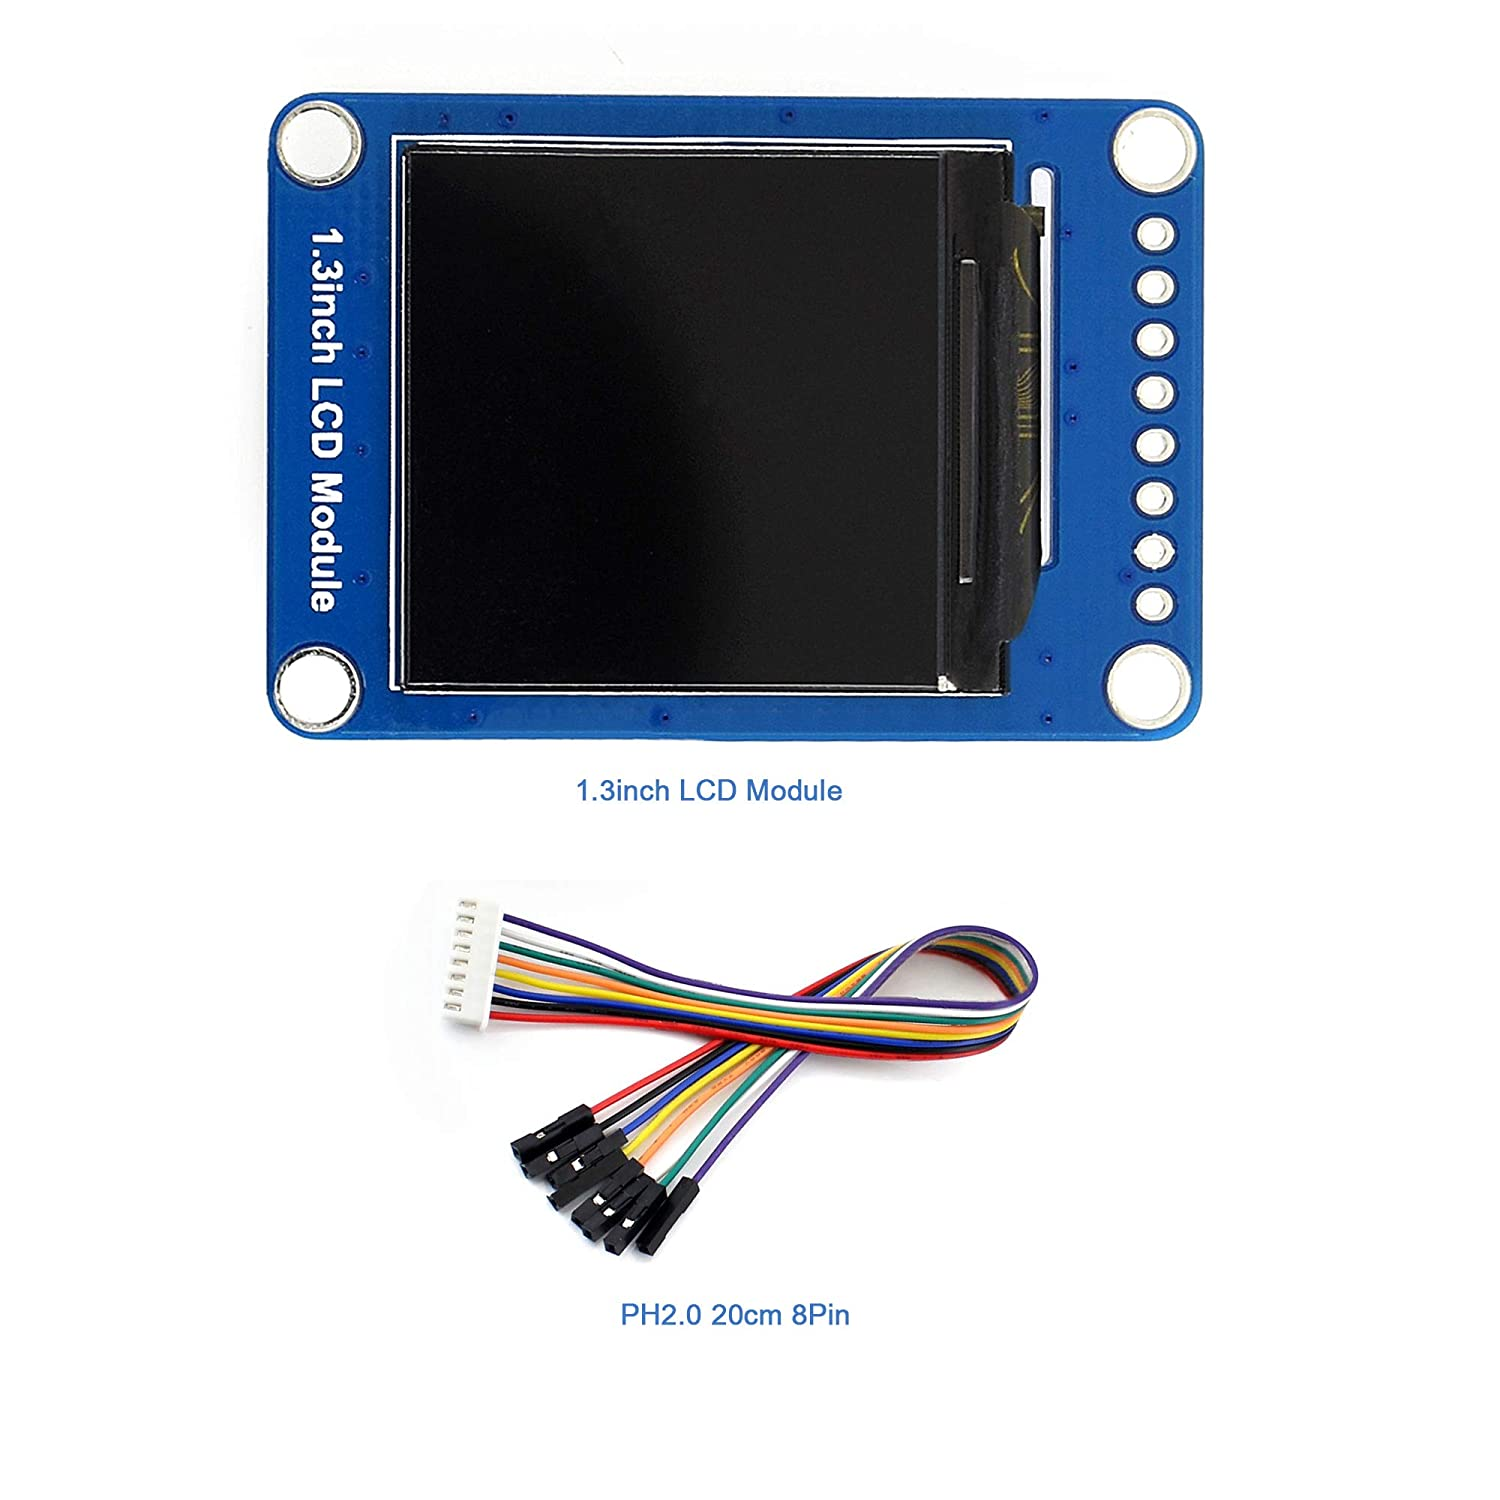 Phenomenal Amazon Com 1 3 Inch Lcd Display Expansion Module Ips Screen Wiring Digital Resources Funapmognl